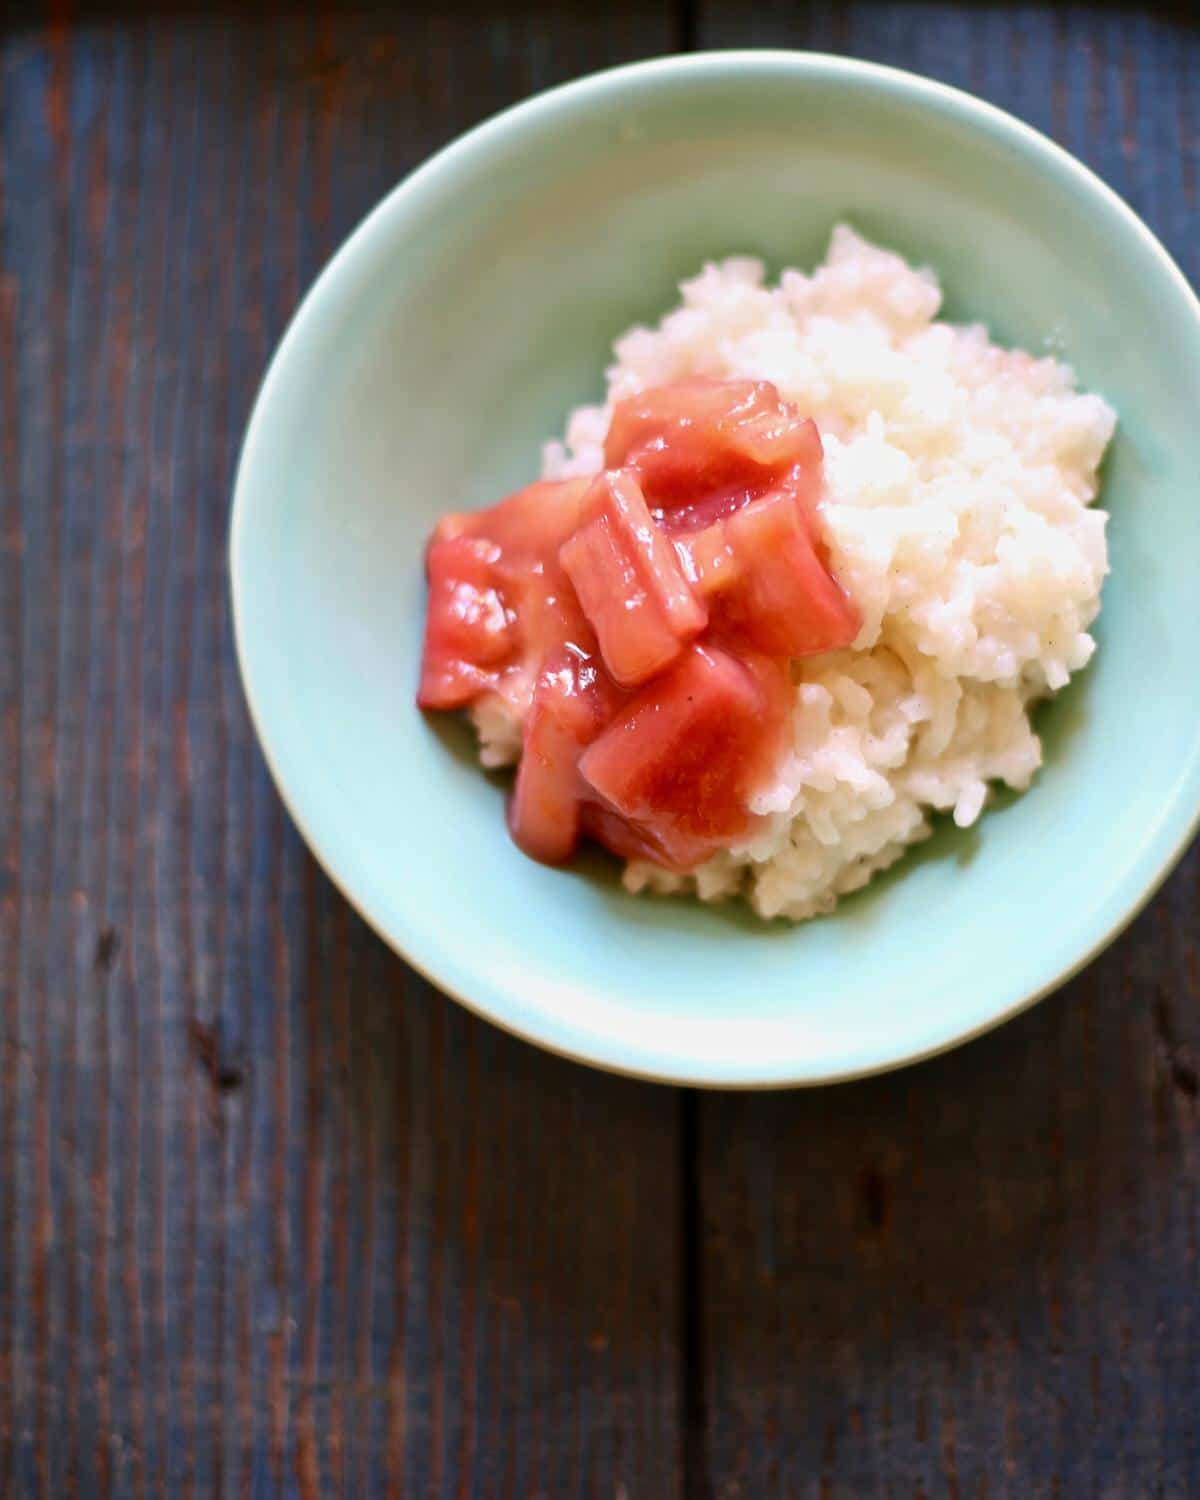 rice pudding with rhubarb in a small blue bowl on a table